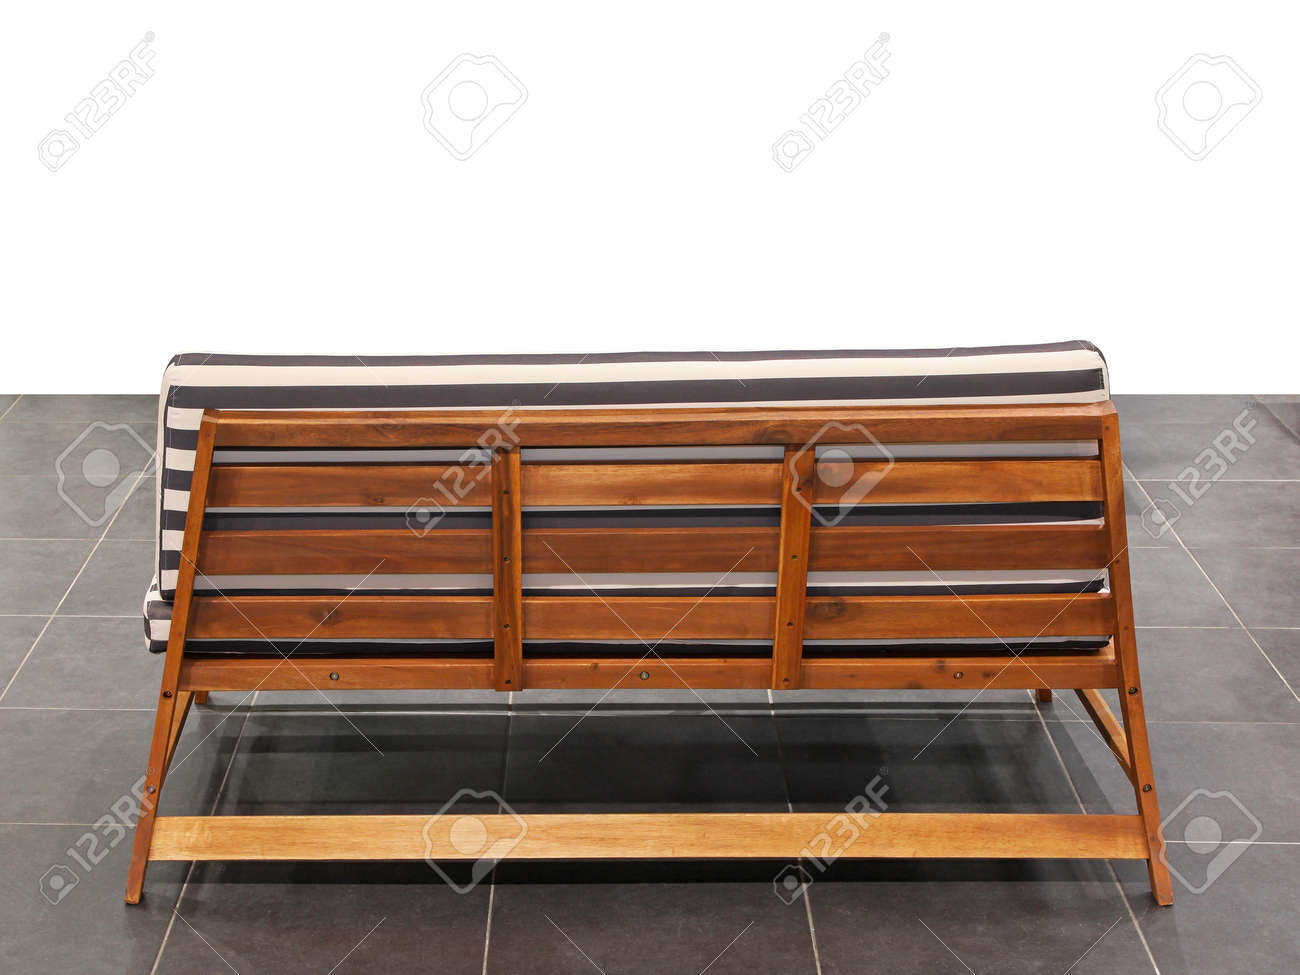 Back view of outdoor wooden bench Stock Photo - 16686514